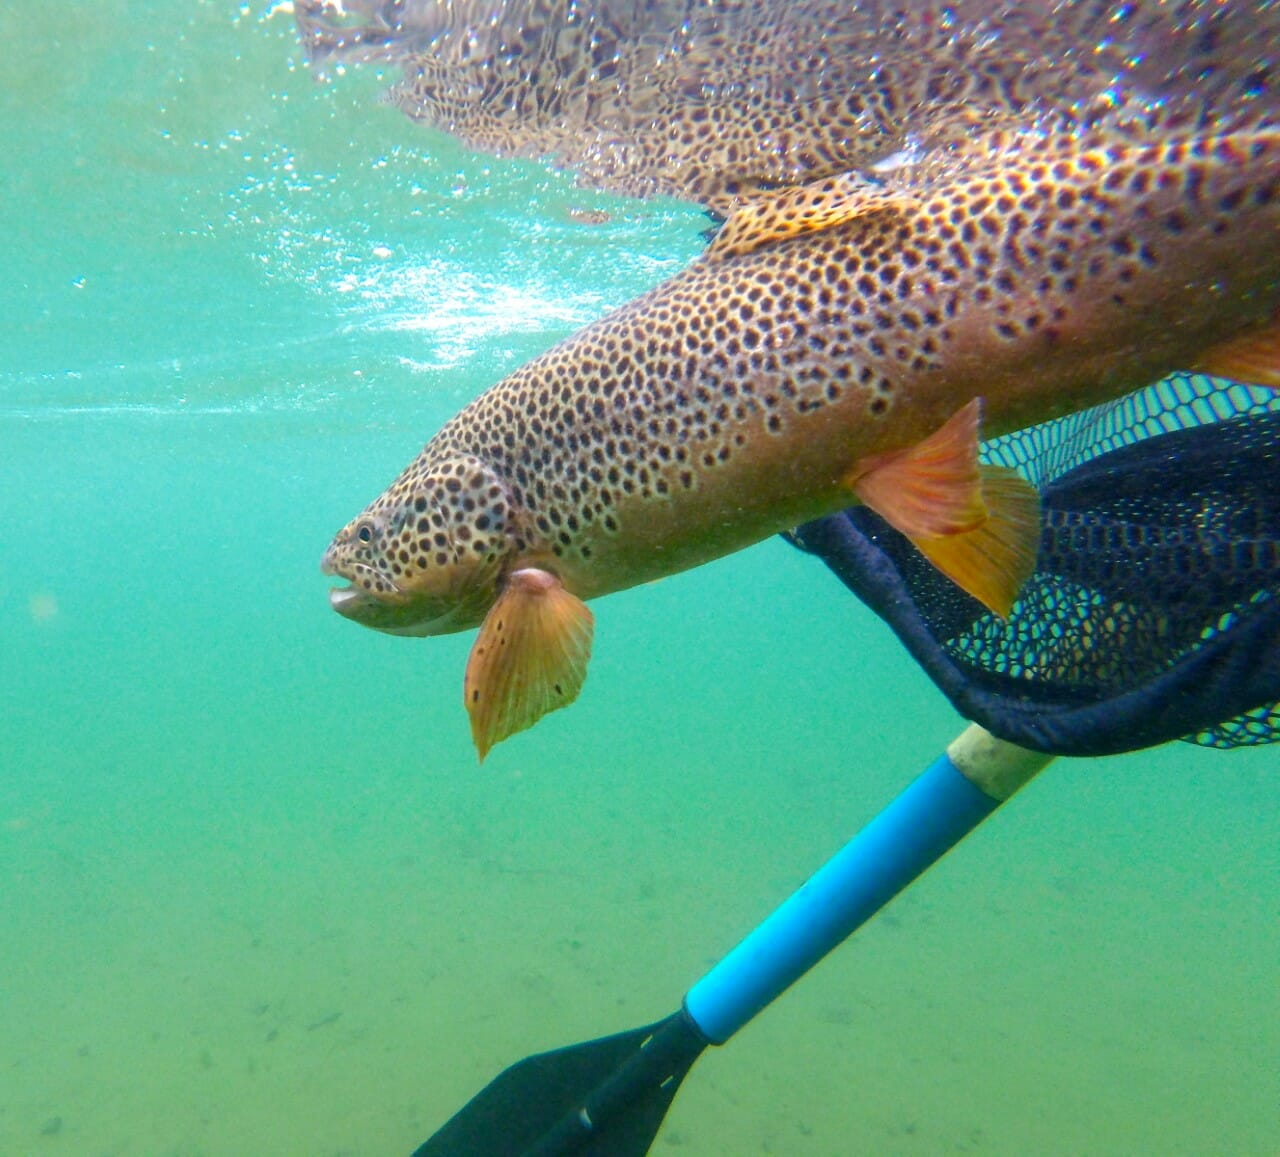 Releasing a brown trout into a river.